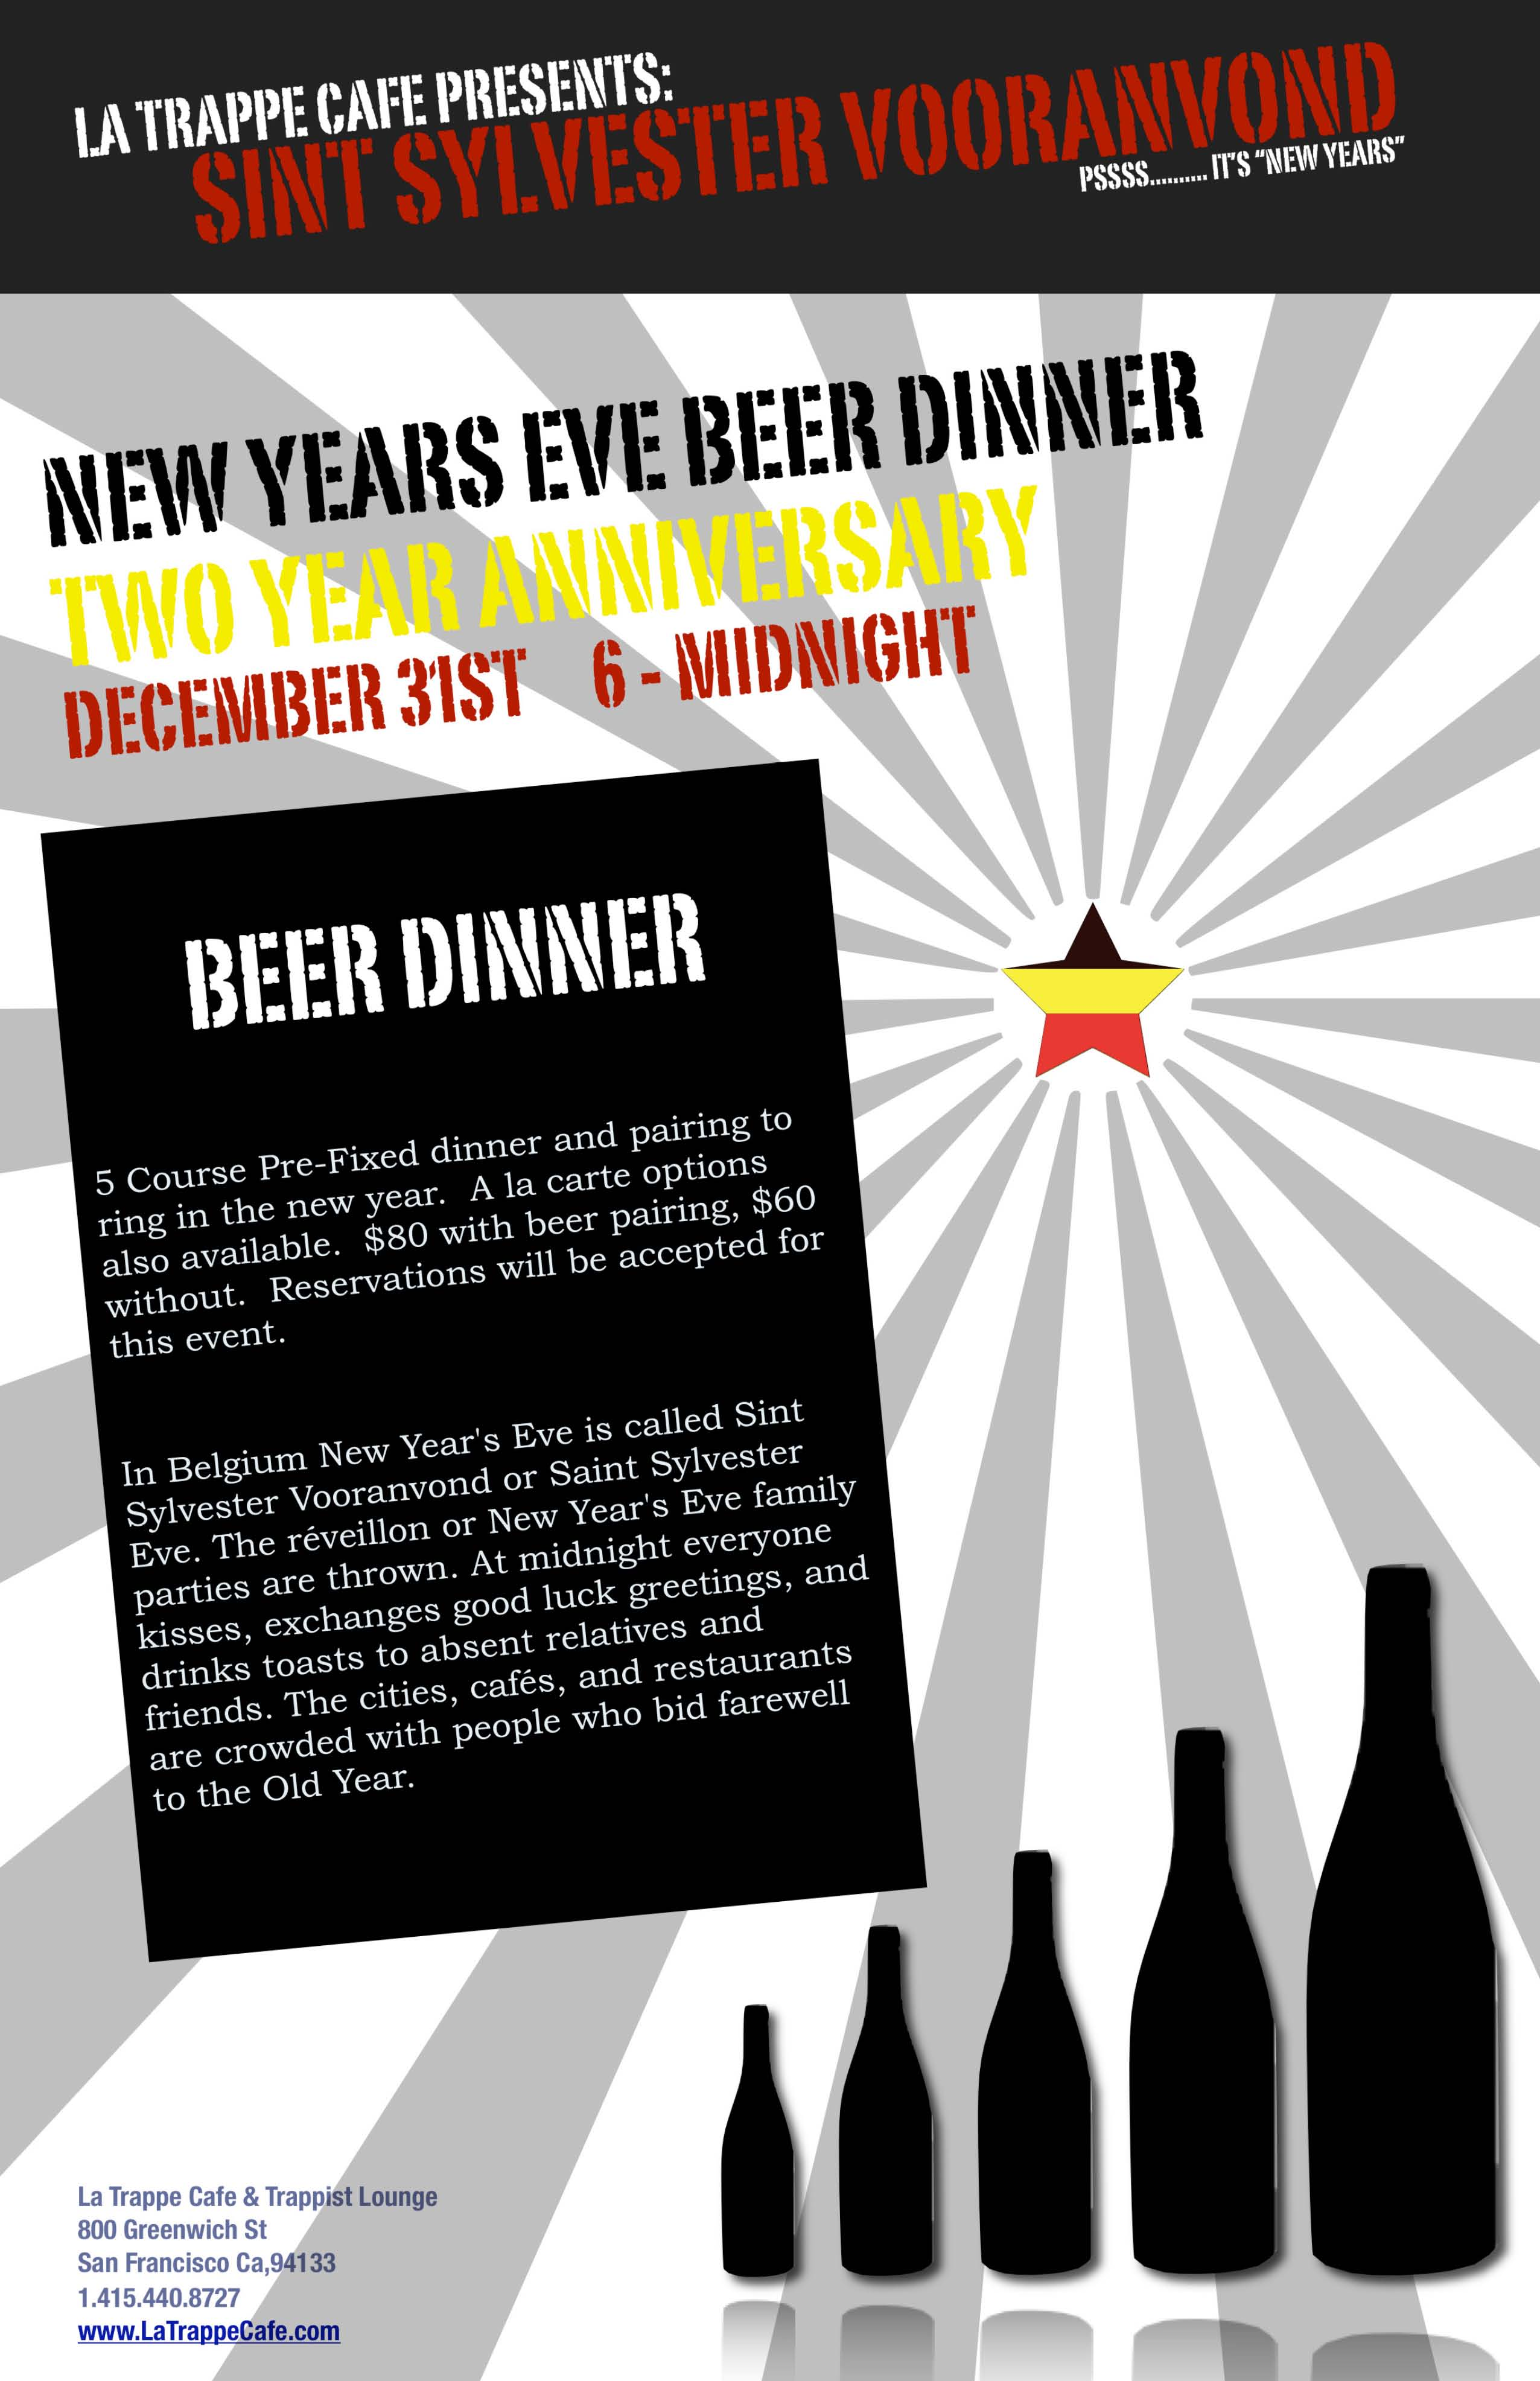 New Years Eve Beer Dinner   La Trappe Cafe